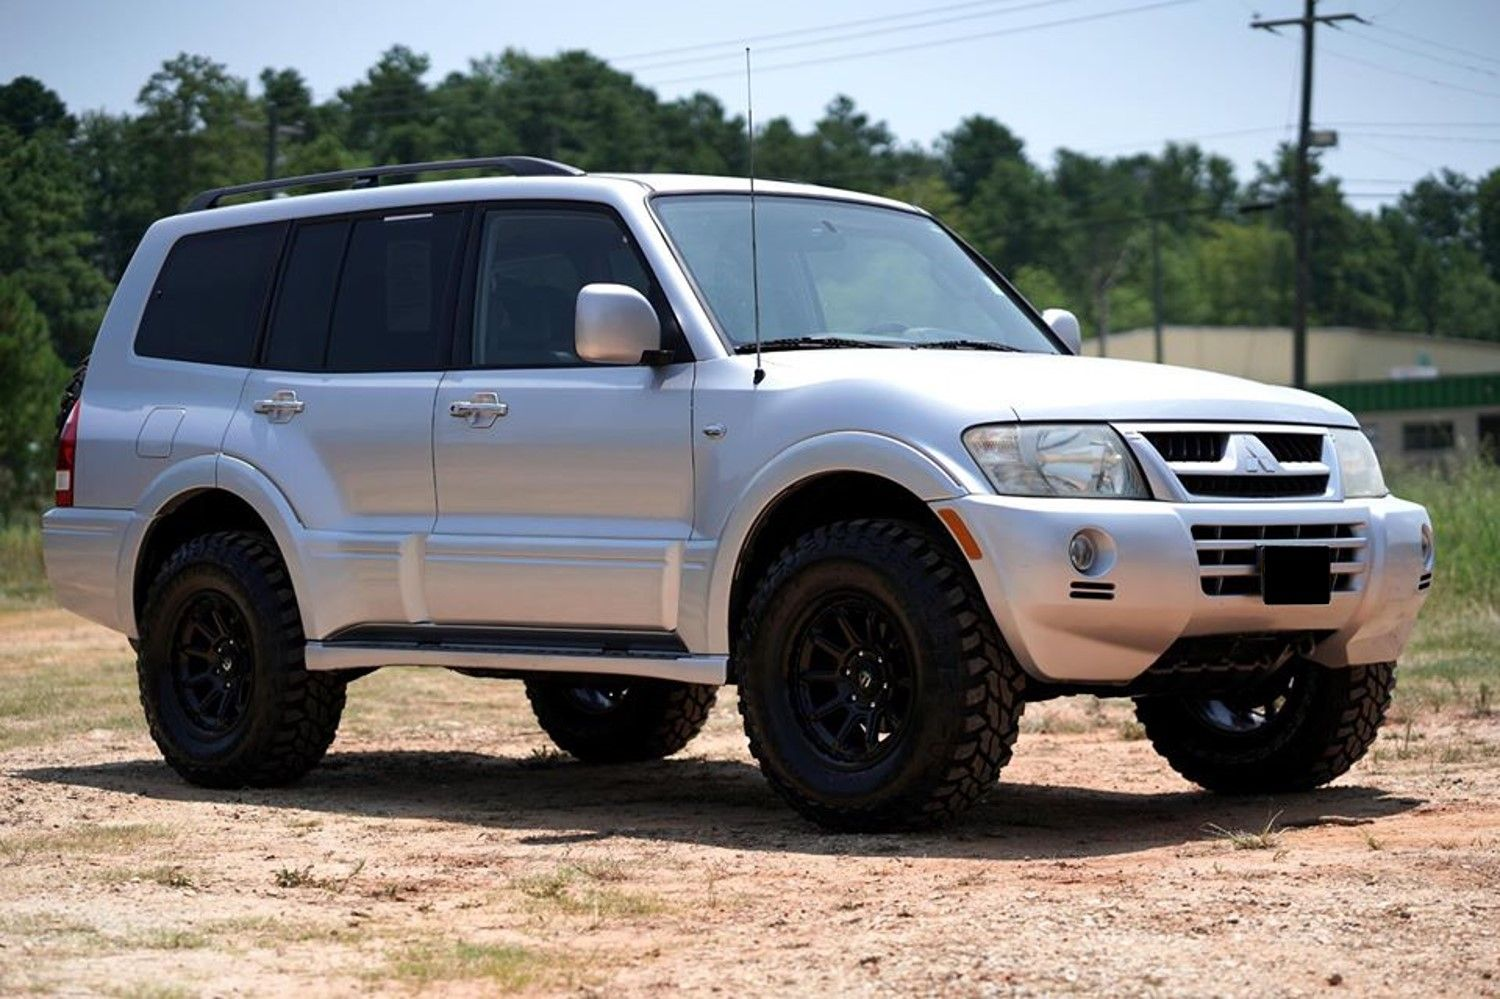 Pin By Chris Ogg On Pajero Montero In 2020 Suv Suv Car Car